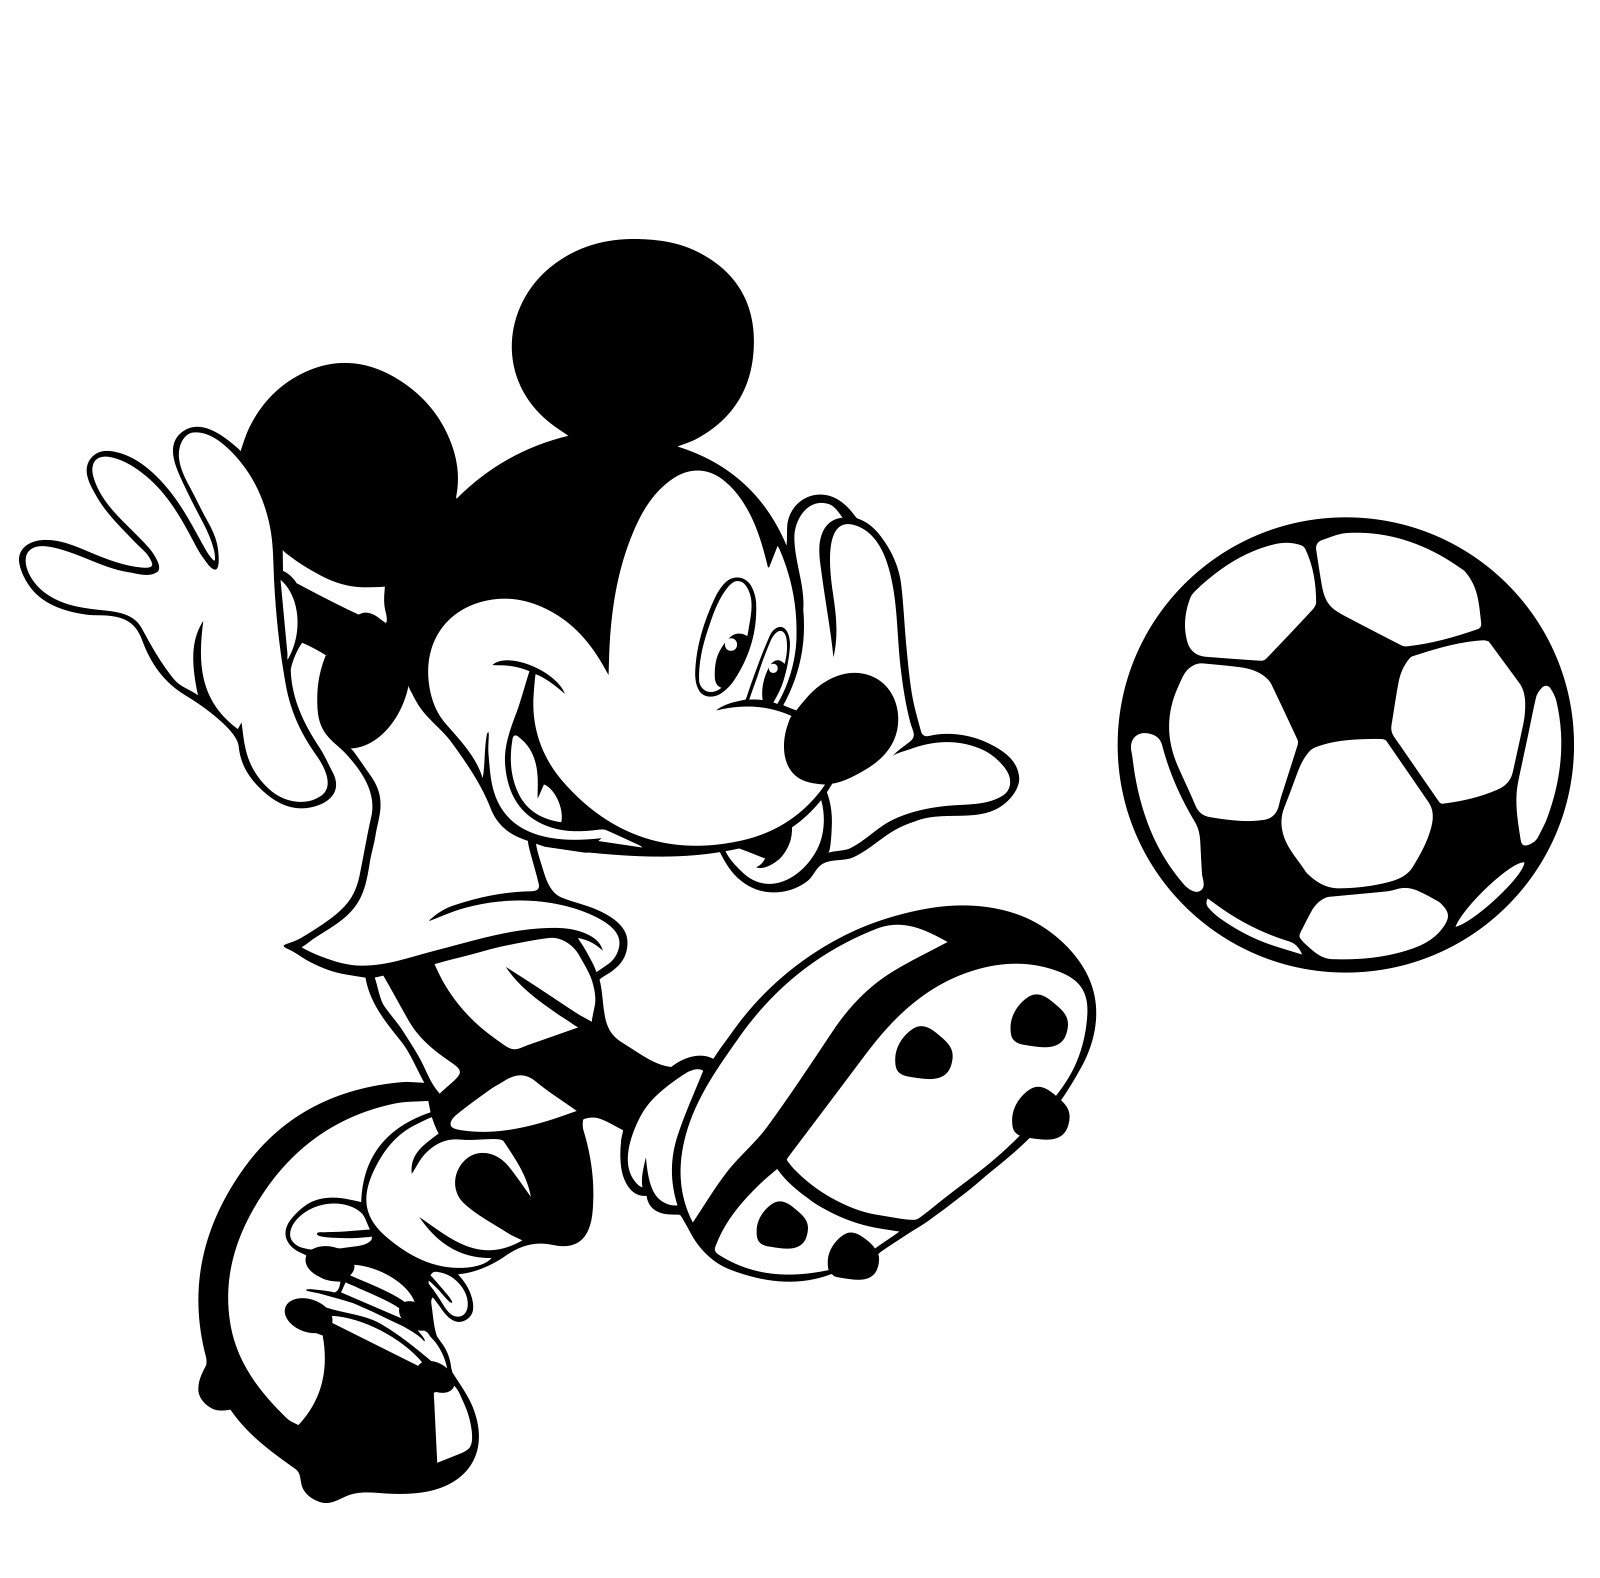 Mickey Mouse Black And White - Cliparts.co